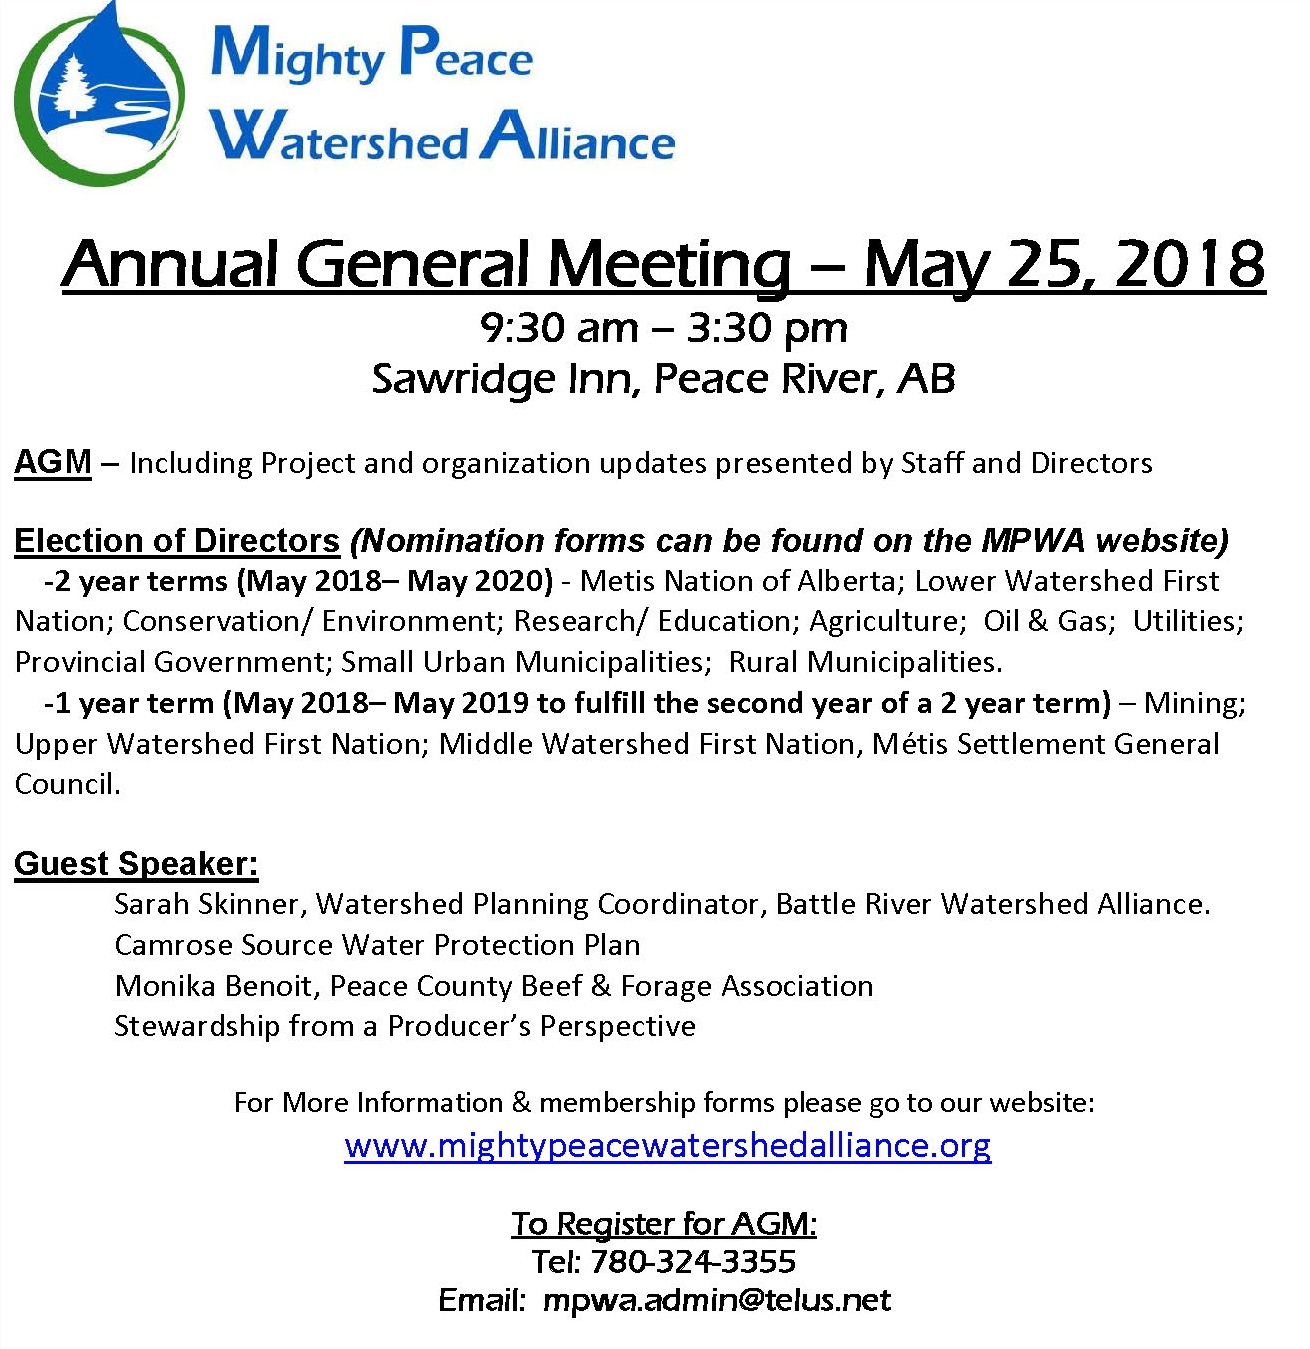 Annual General Meeting - Mighty Peace Watershed Alliance